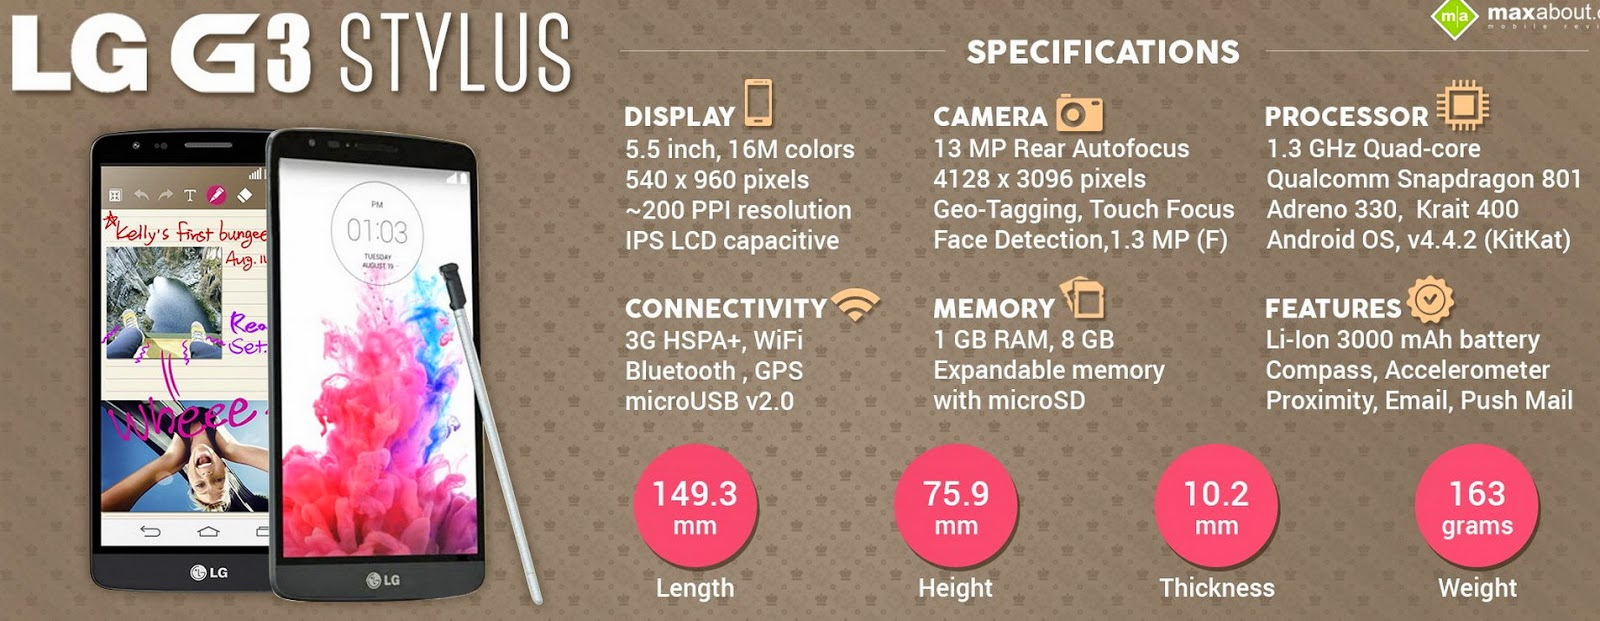 LG G3 Stylus review, new LG G3 Stylus, selfie camera, new android smartphone, Android KitKat, Android 5, Android Lollypop,